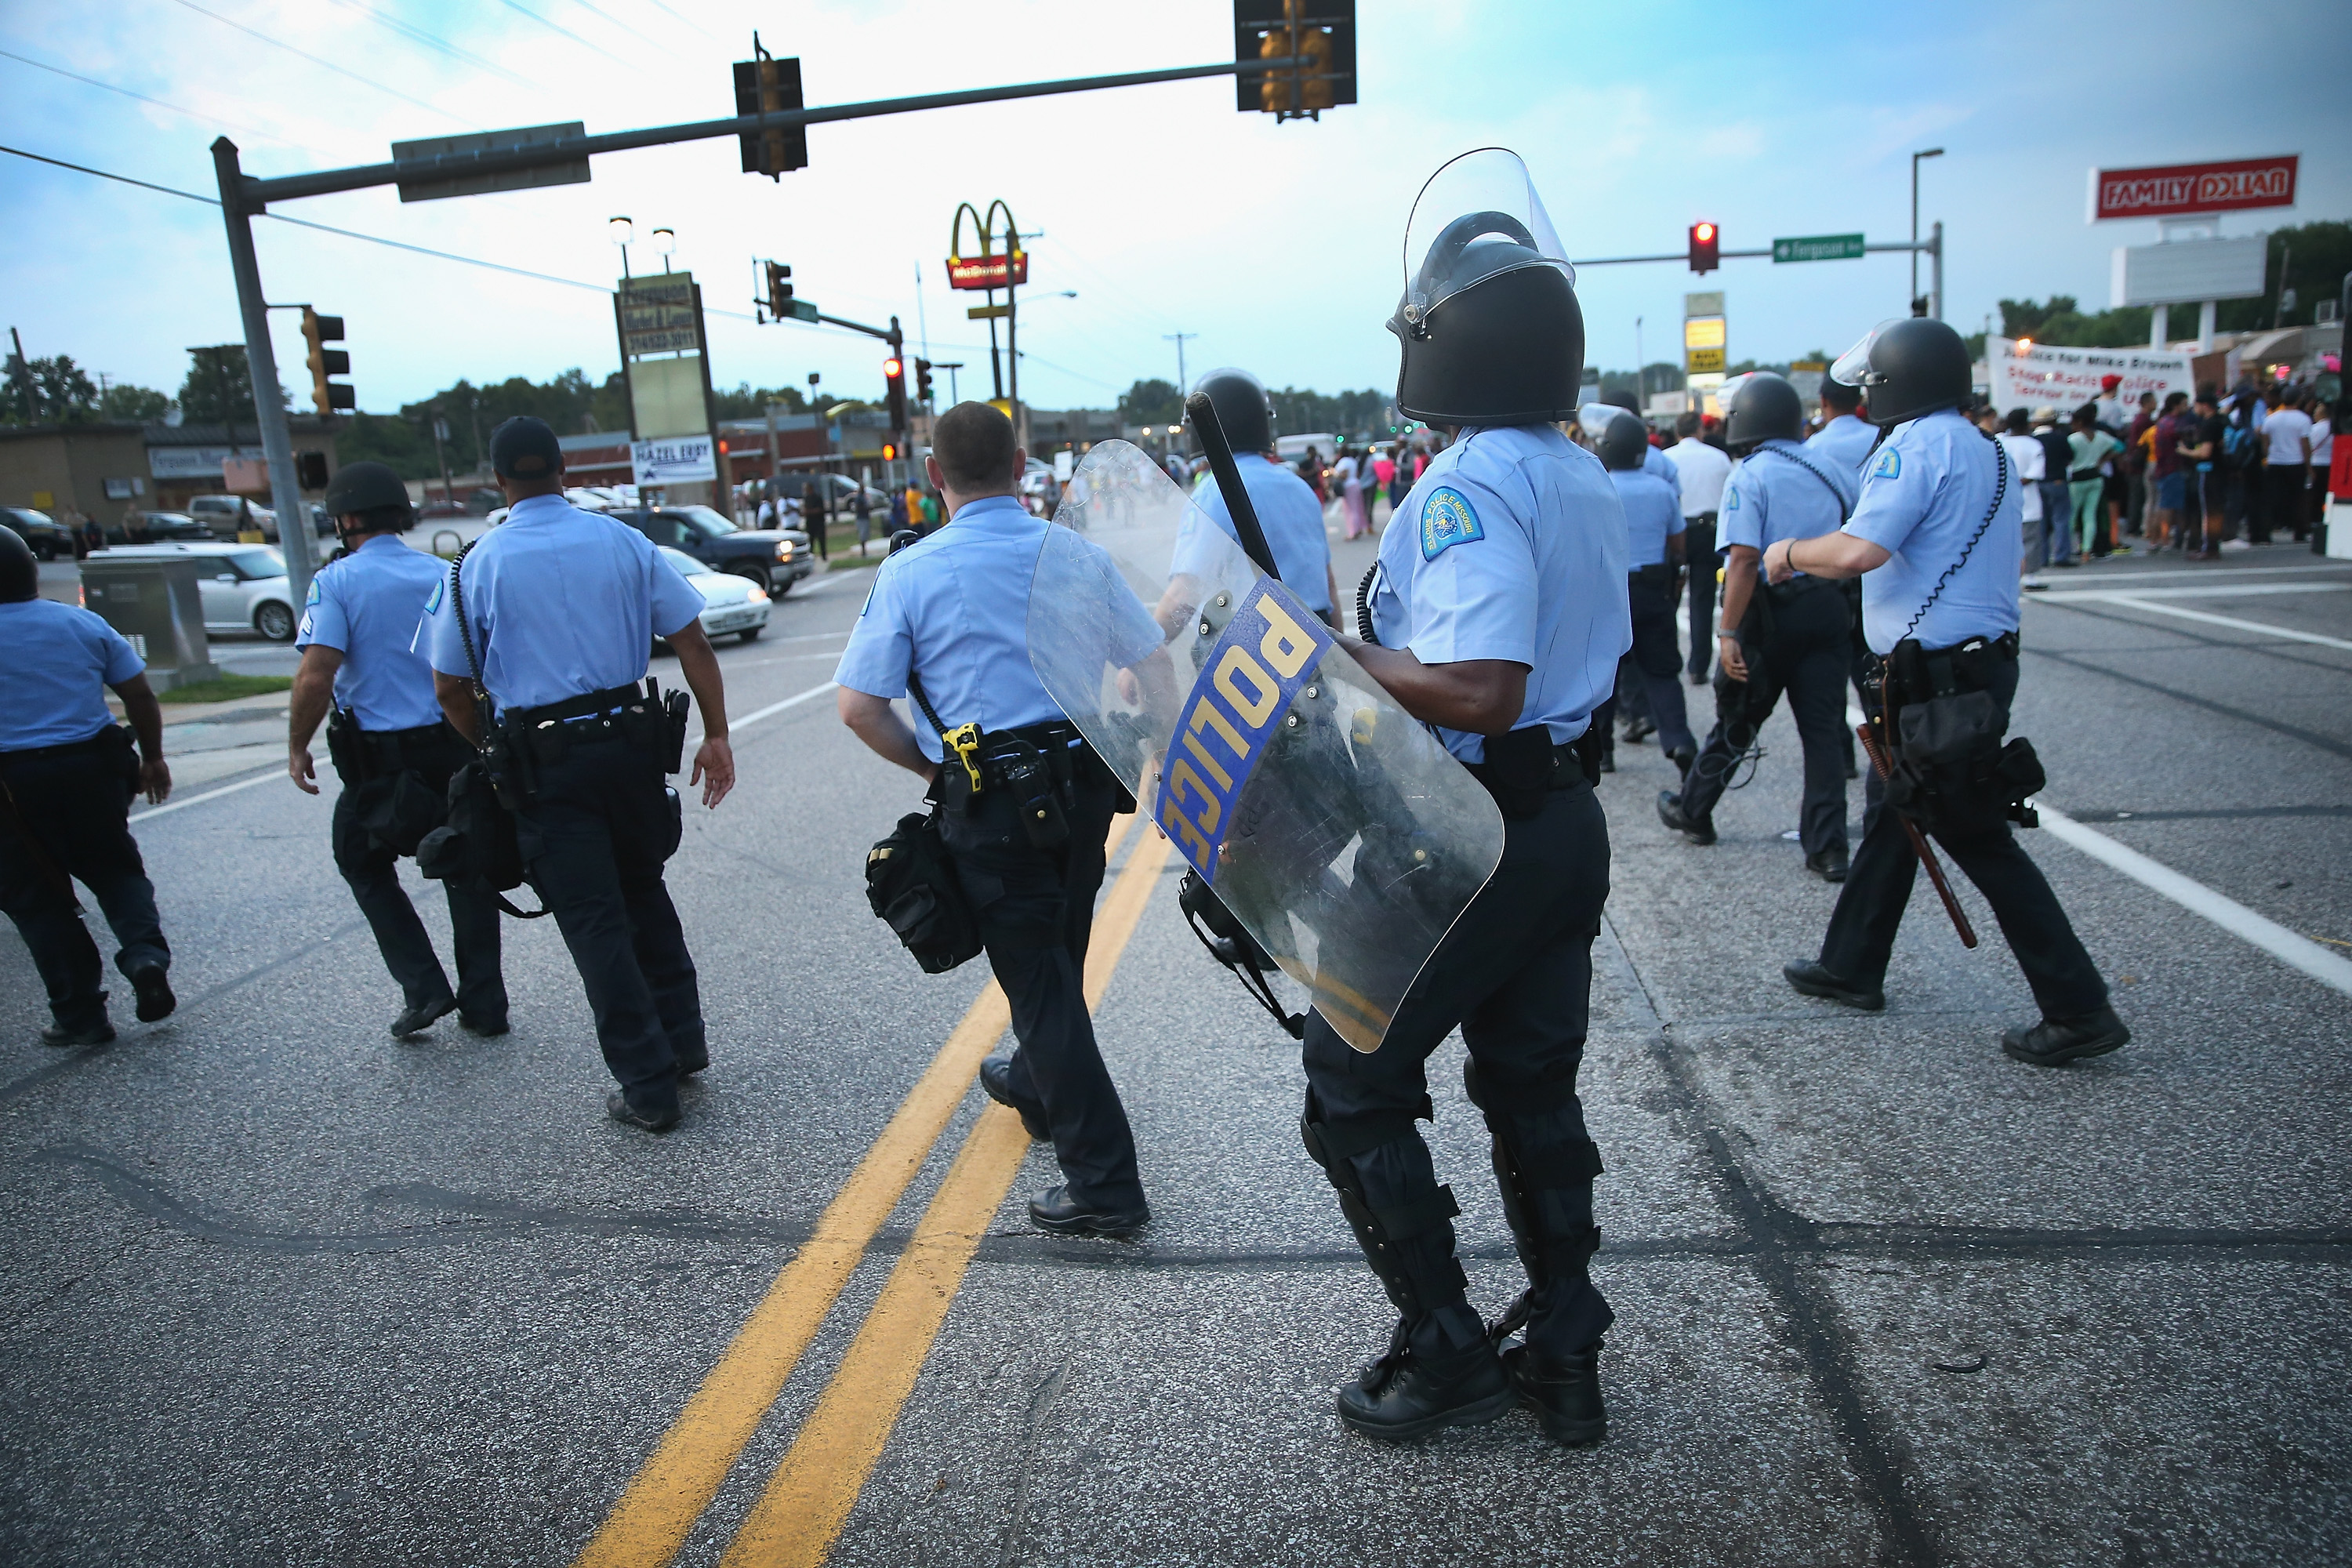 Police are deployed to keep peace along Florissant Avenue on Aug. 16, 2014 in Ferguson, Missouri.